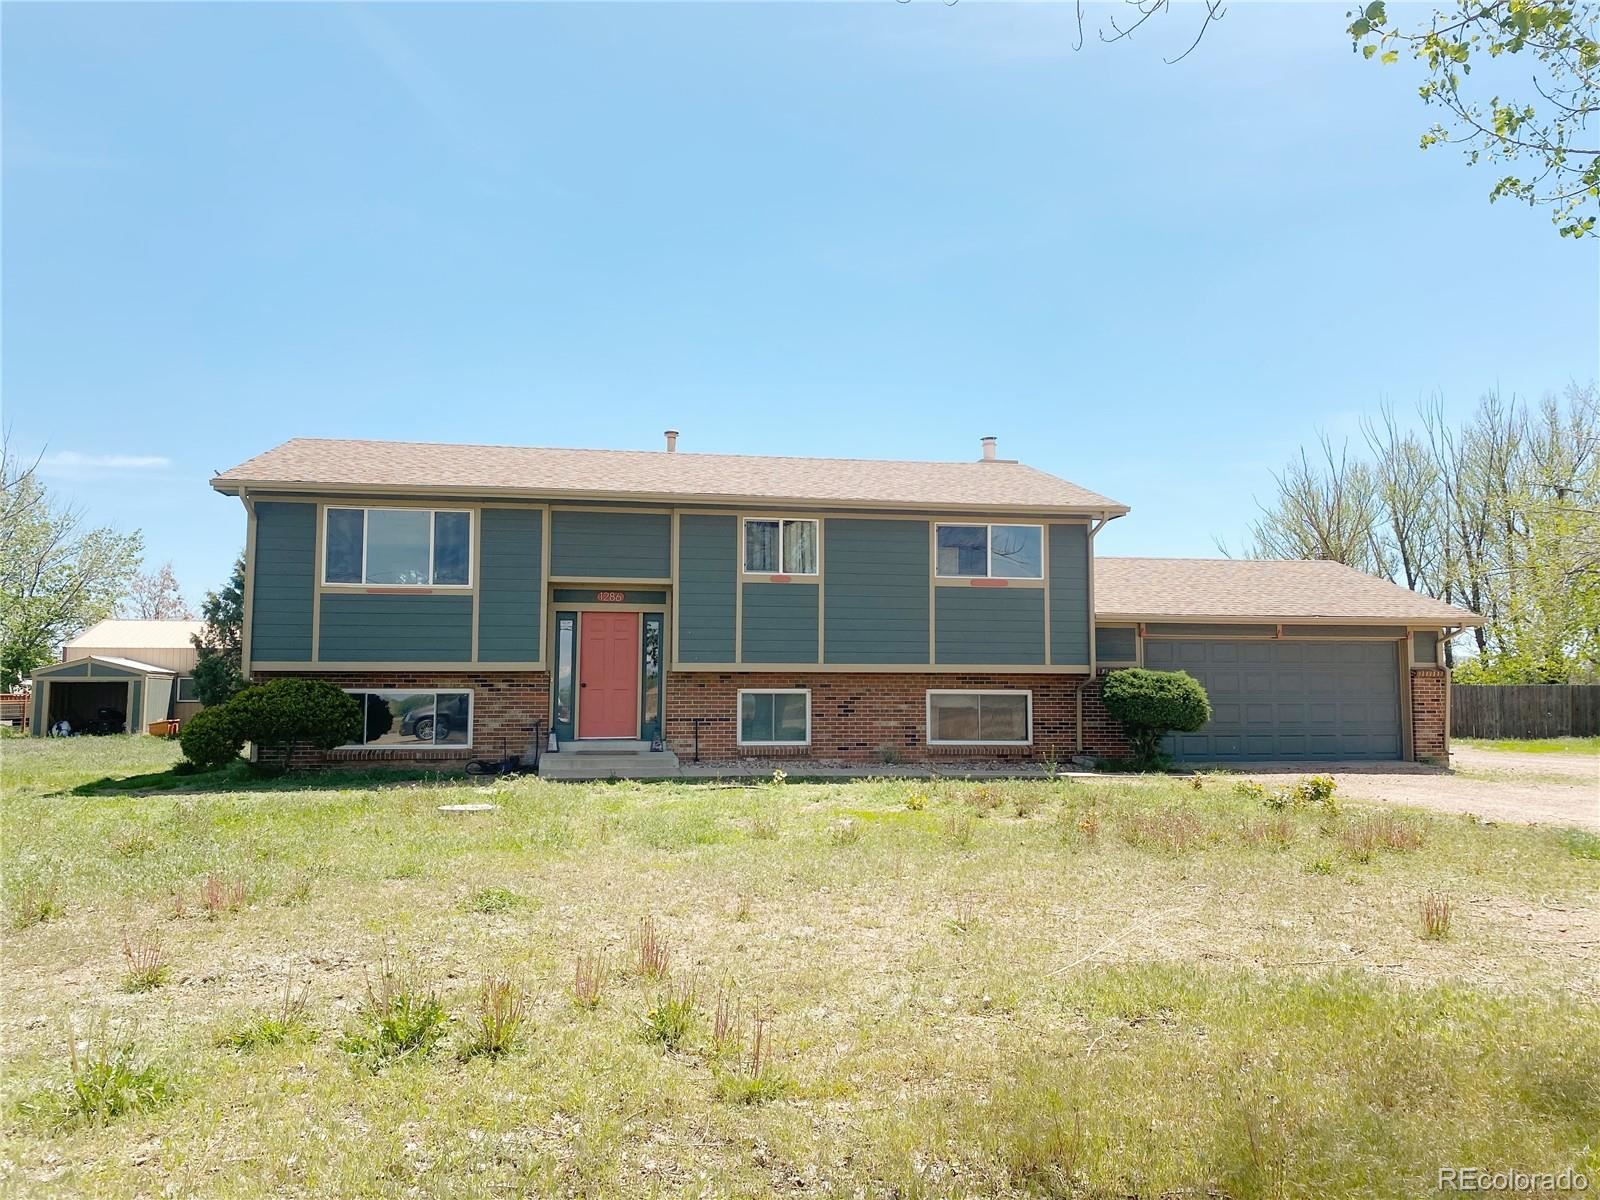 1286 S Denver Avenue, Fort Lupton, CO 80621 - #: 8331667